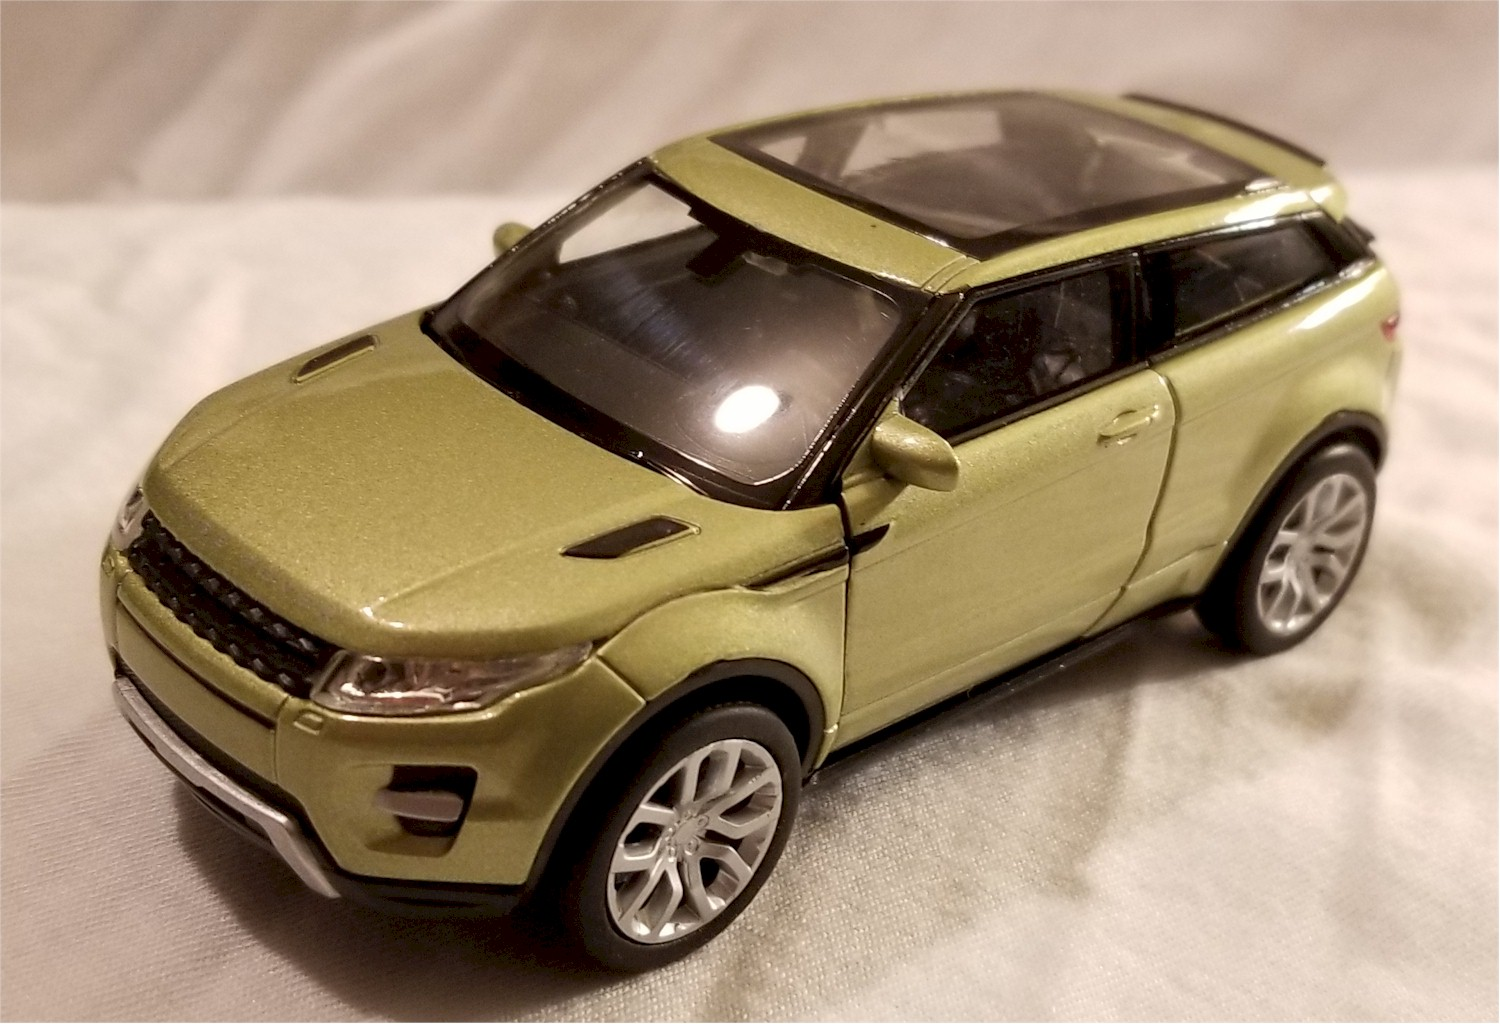 This Is A Brand New Welly 1 34 39 Scale Model Land Rover Range Evoque Green The About 4 75 Inches Long Comes With Pull Back